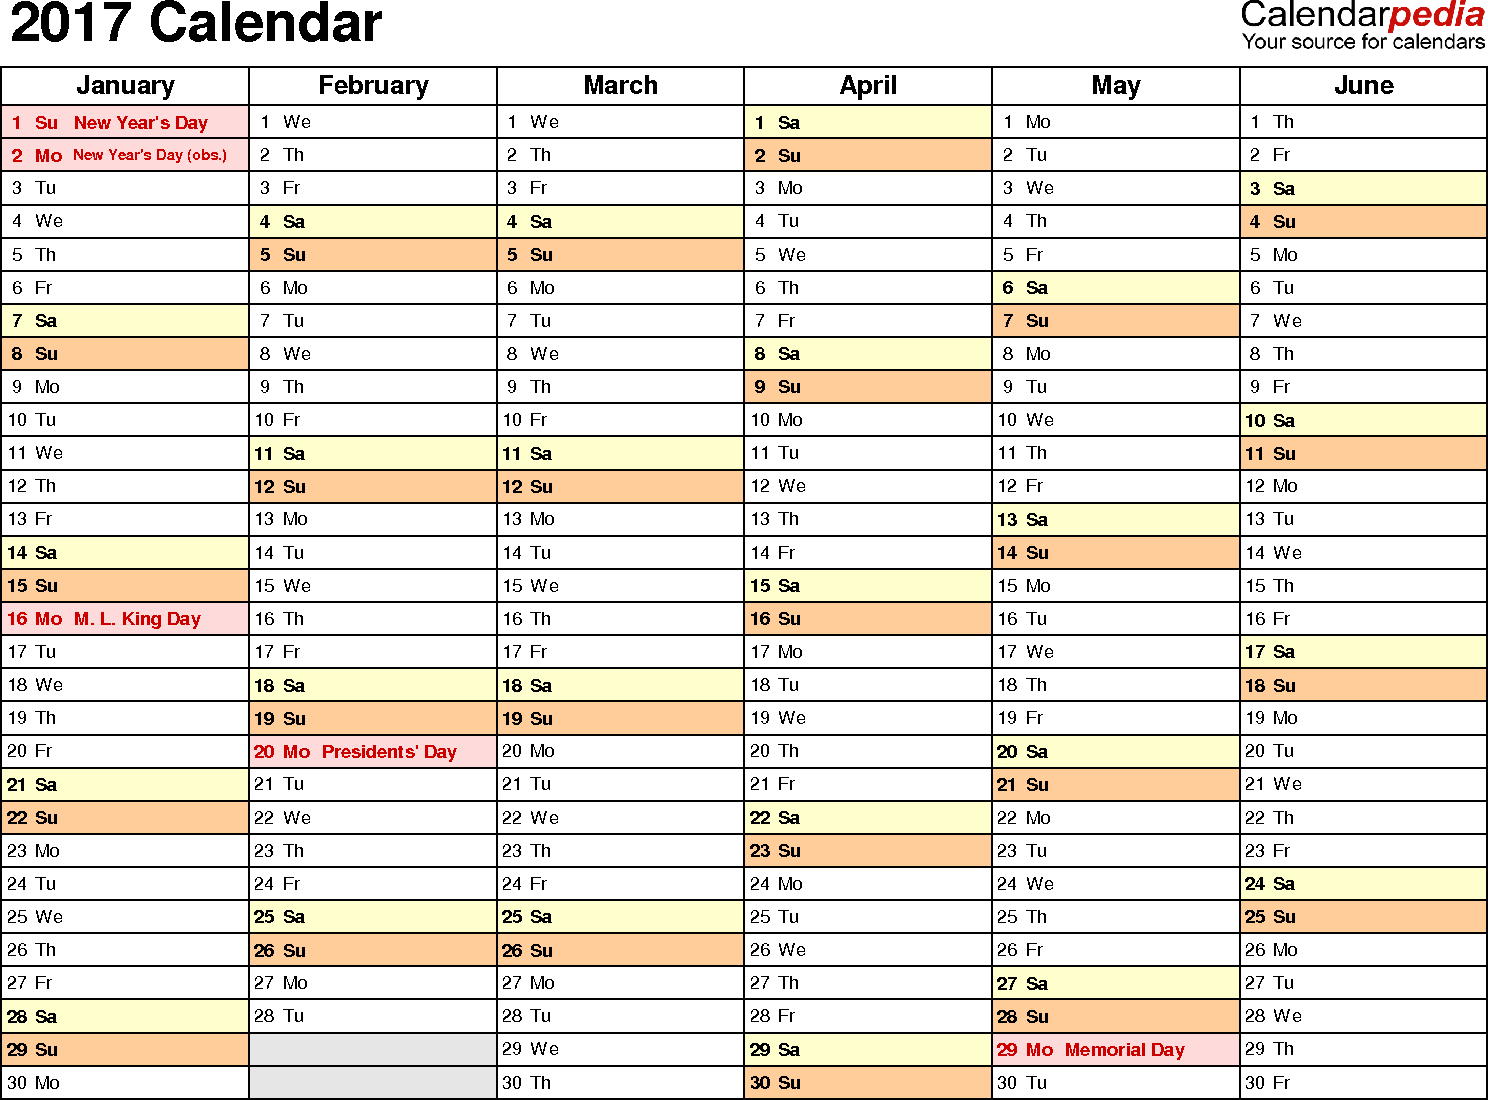 Ediblewildsus  Unusual  Calendar  Download  Free Printable Excel Templates Xls With Fair Template   Calendar For Excel Months Horizontally  Pages Landscape Orientation With Awesome Excel Math Formulas Cheat Sheet Also Excel Formula Hyperlink In Addition Excel Equals Function And Roundup Excel Function As Well As Excel Cell Validation Additionally Checkbox In Excel  From Calendarpediacom With Ediblewildsus  Fair  Calendar  Download  Free Printable Excel Templates Xls With Awesome Template   Calendar For Excel Months Horizontally  Pages Landscape Orientation And Unusual Excel Math Formulas Cheat Sheet Also Excel Formula Hyperlink In Addition Excel Equals Function From Calendarpediacom